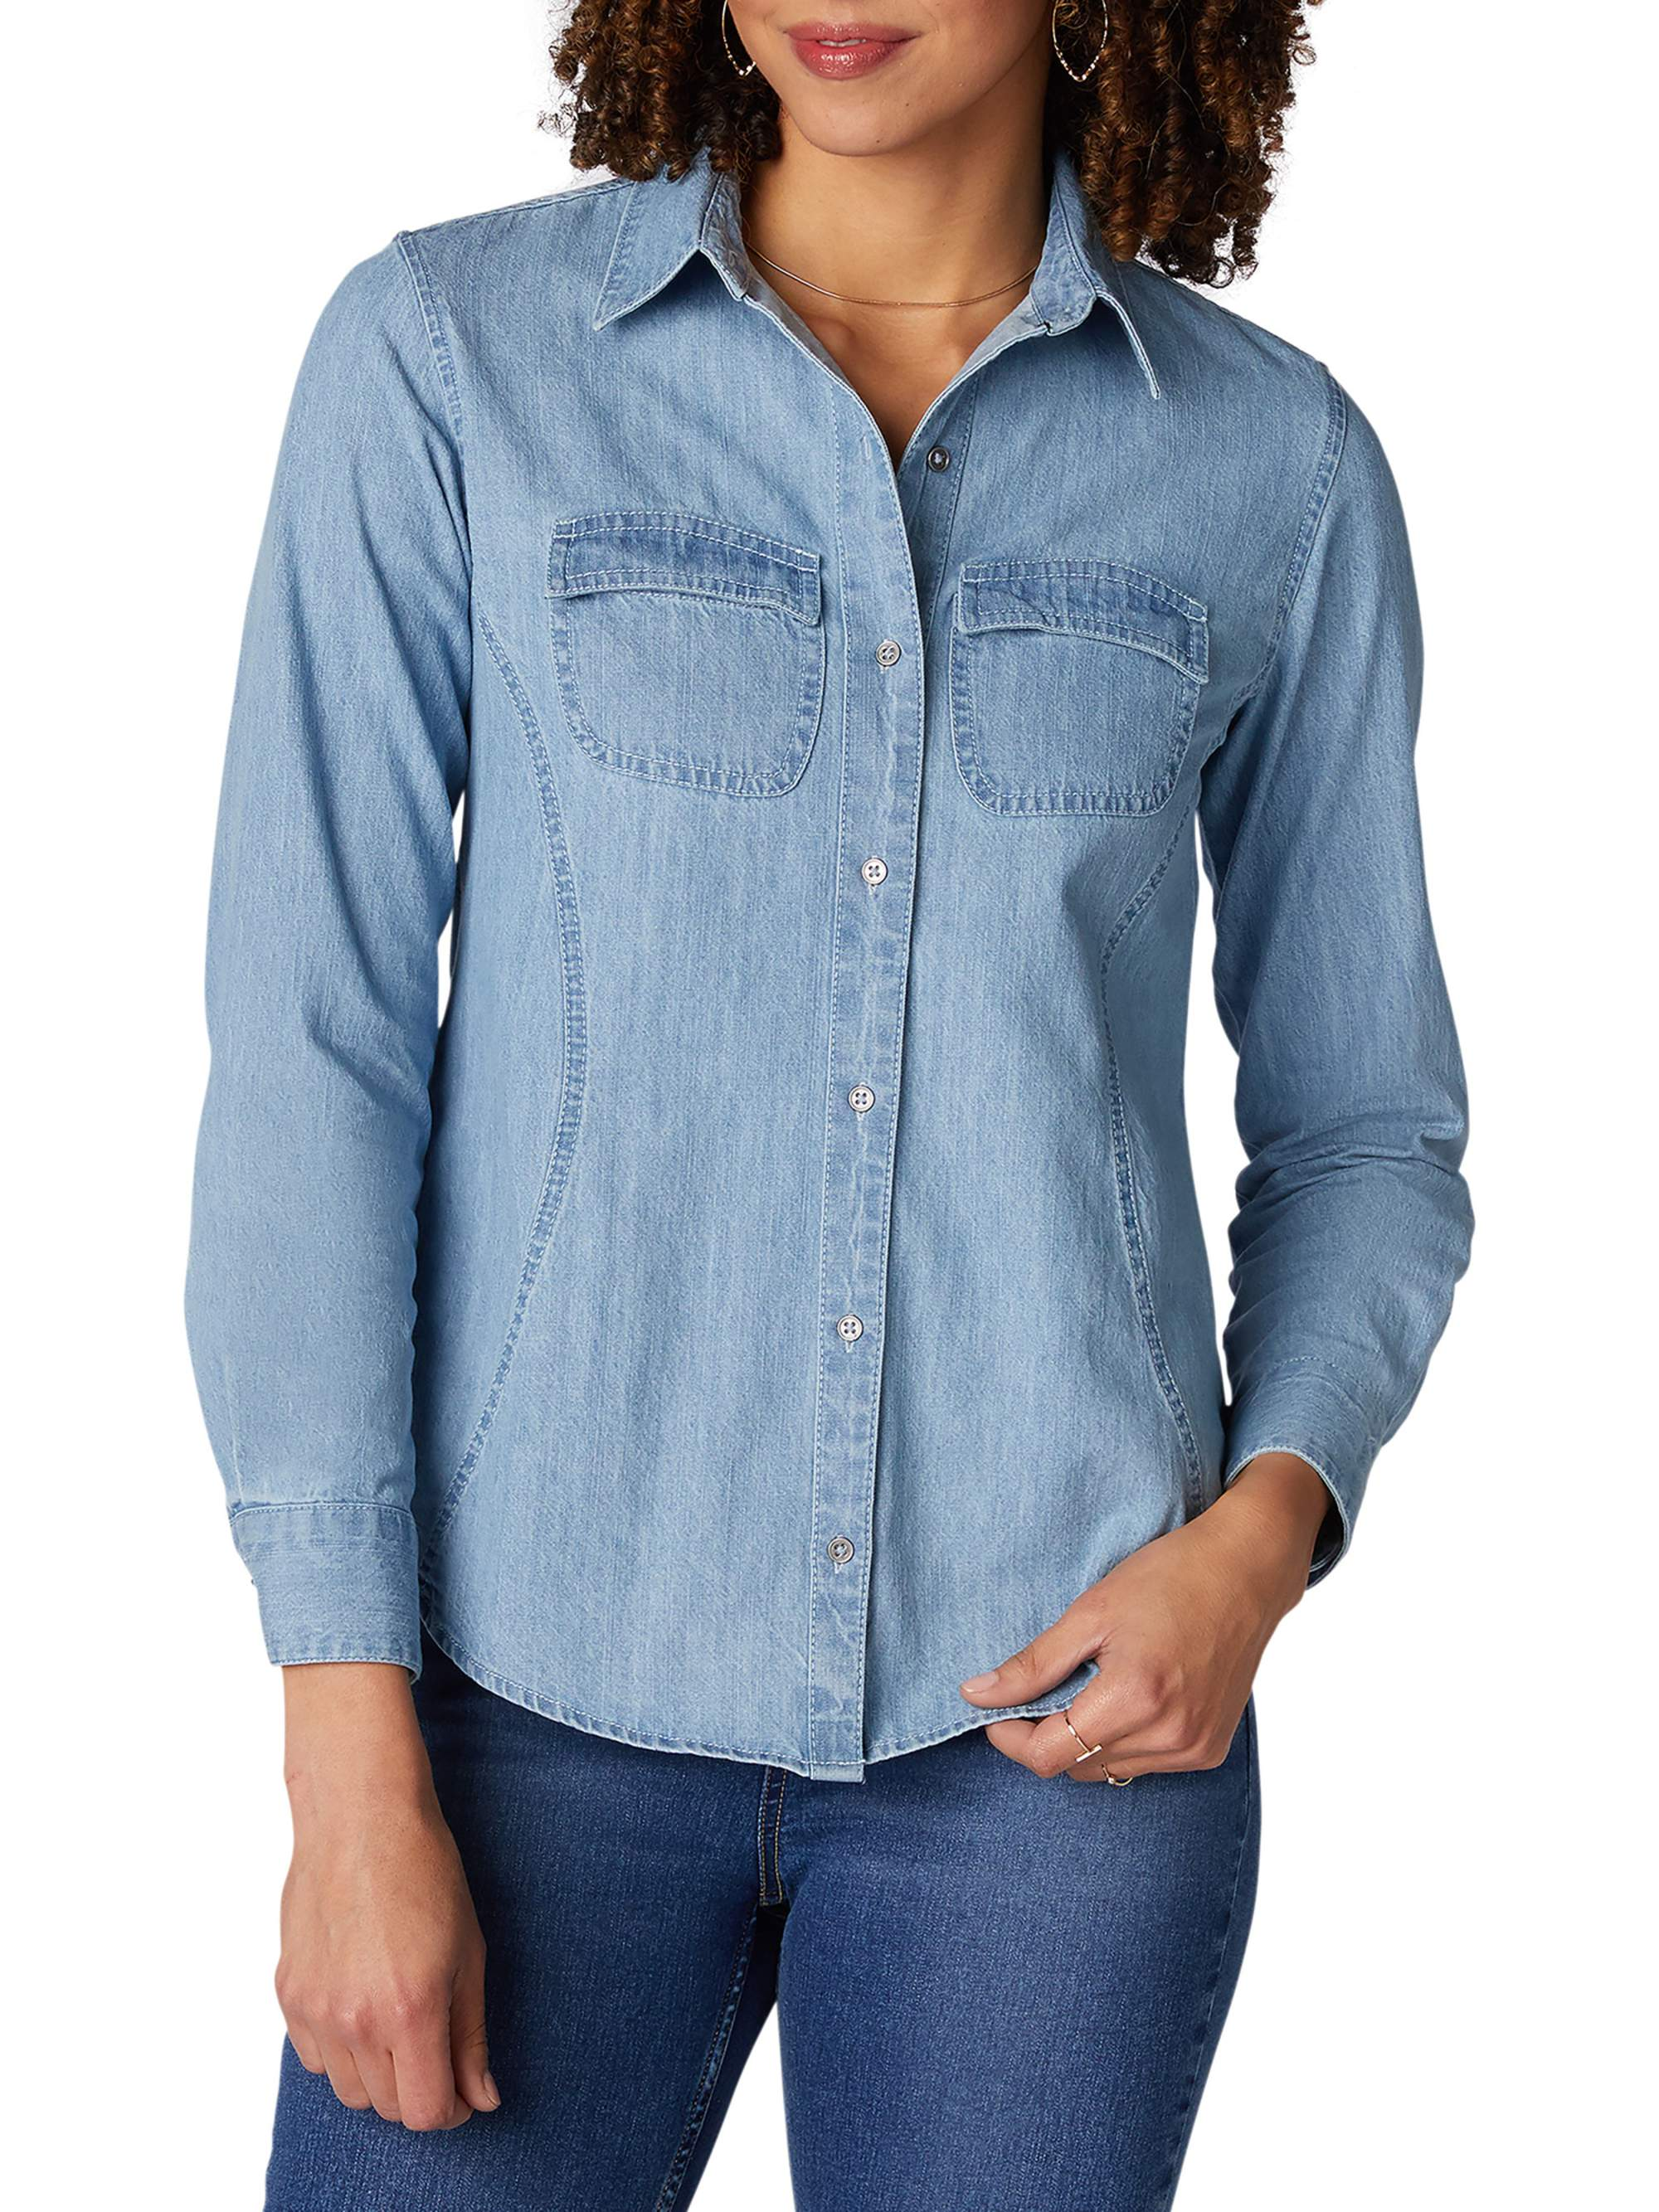 Alion Mens Basic Classic Slim Fit Long Sleeve Button Down Shirt Tops